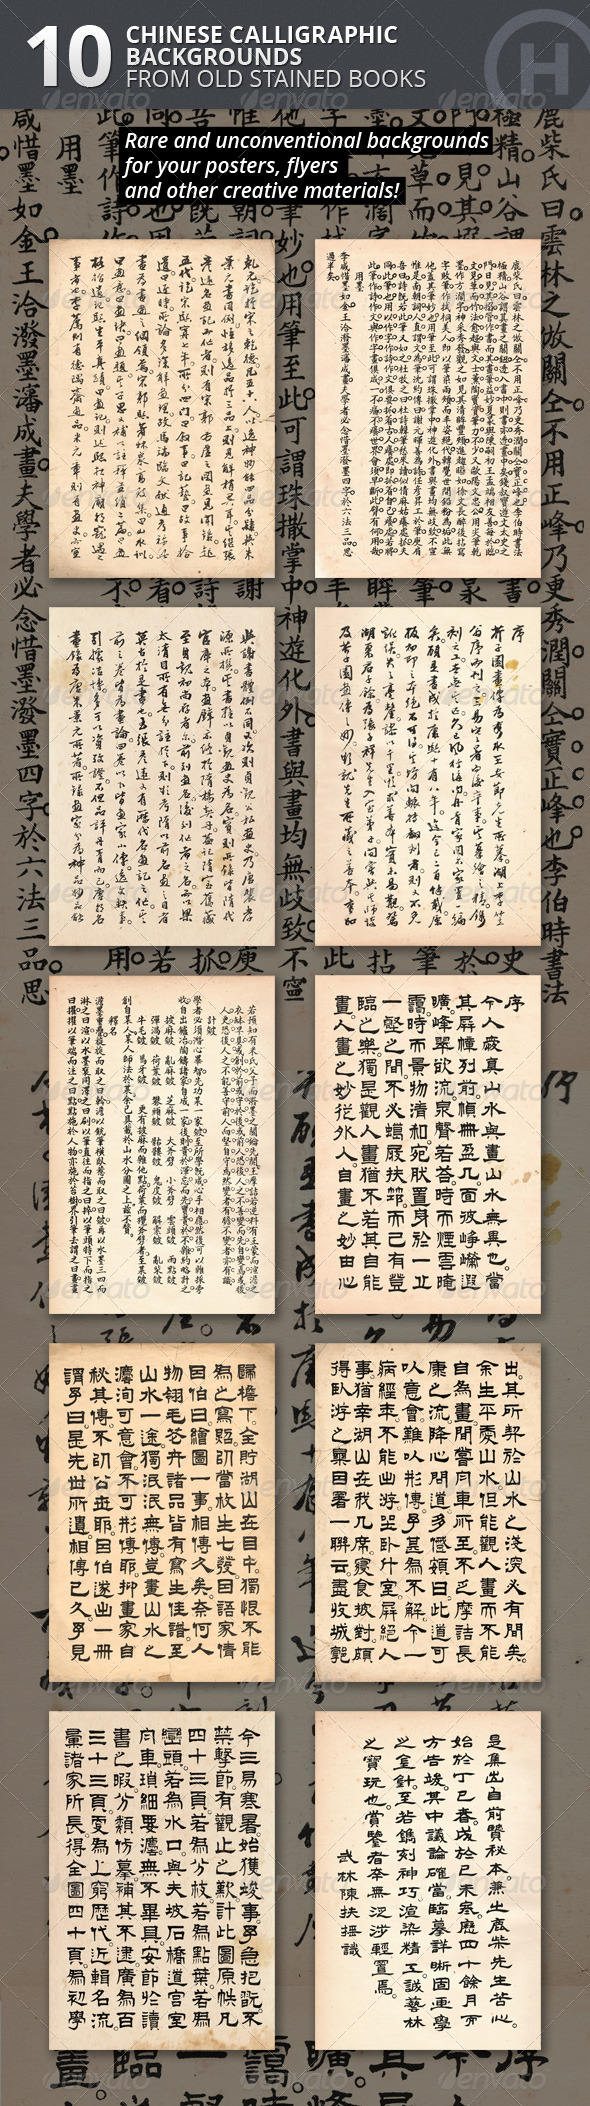 10 Old Stained Chinese Calligraphic Backgrounds - Miscellaneous Textures